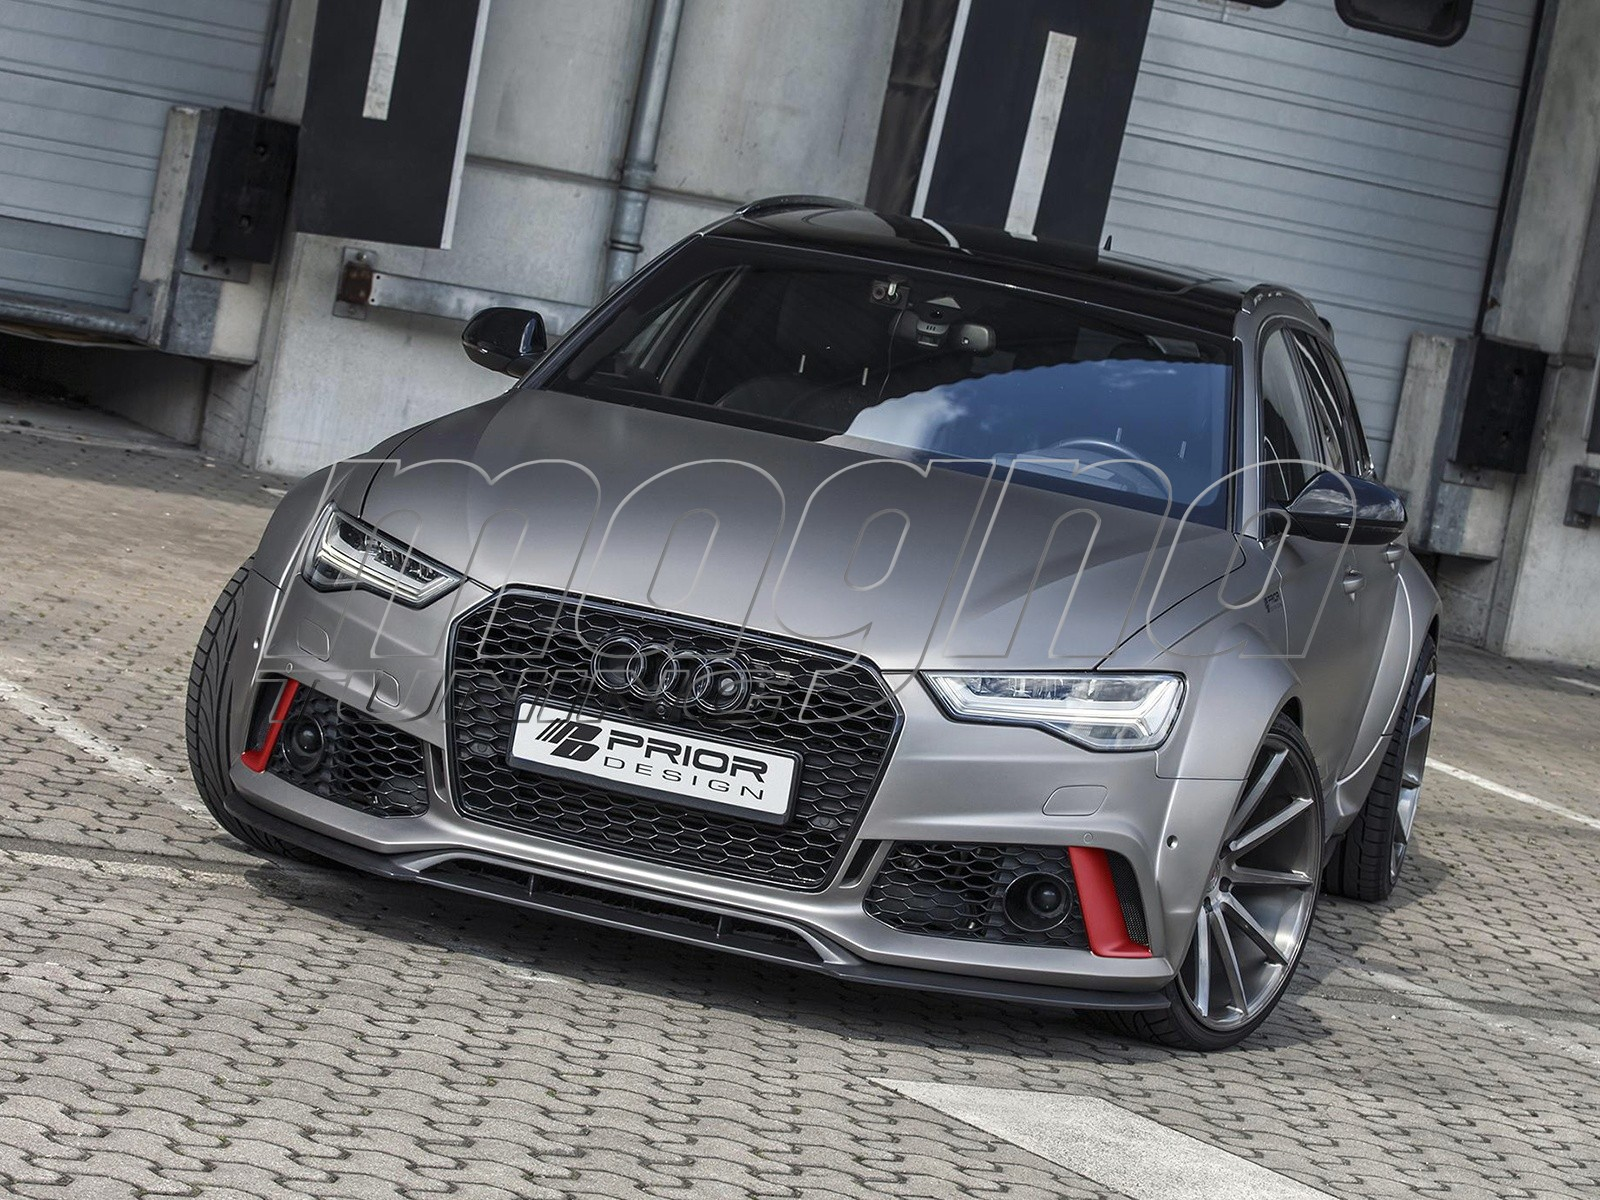 audi a6 c7 4g exclusive wide body kit